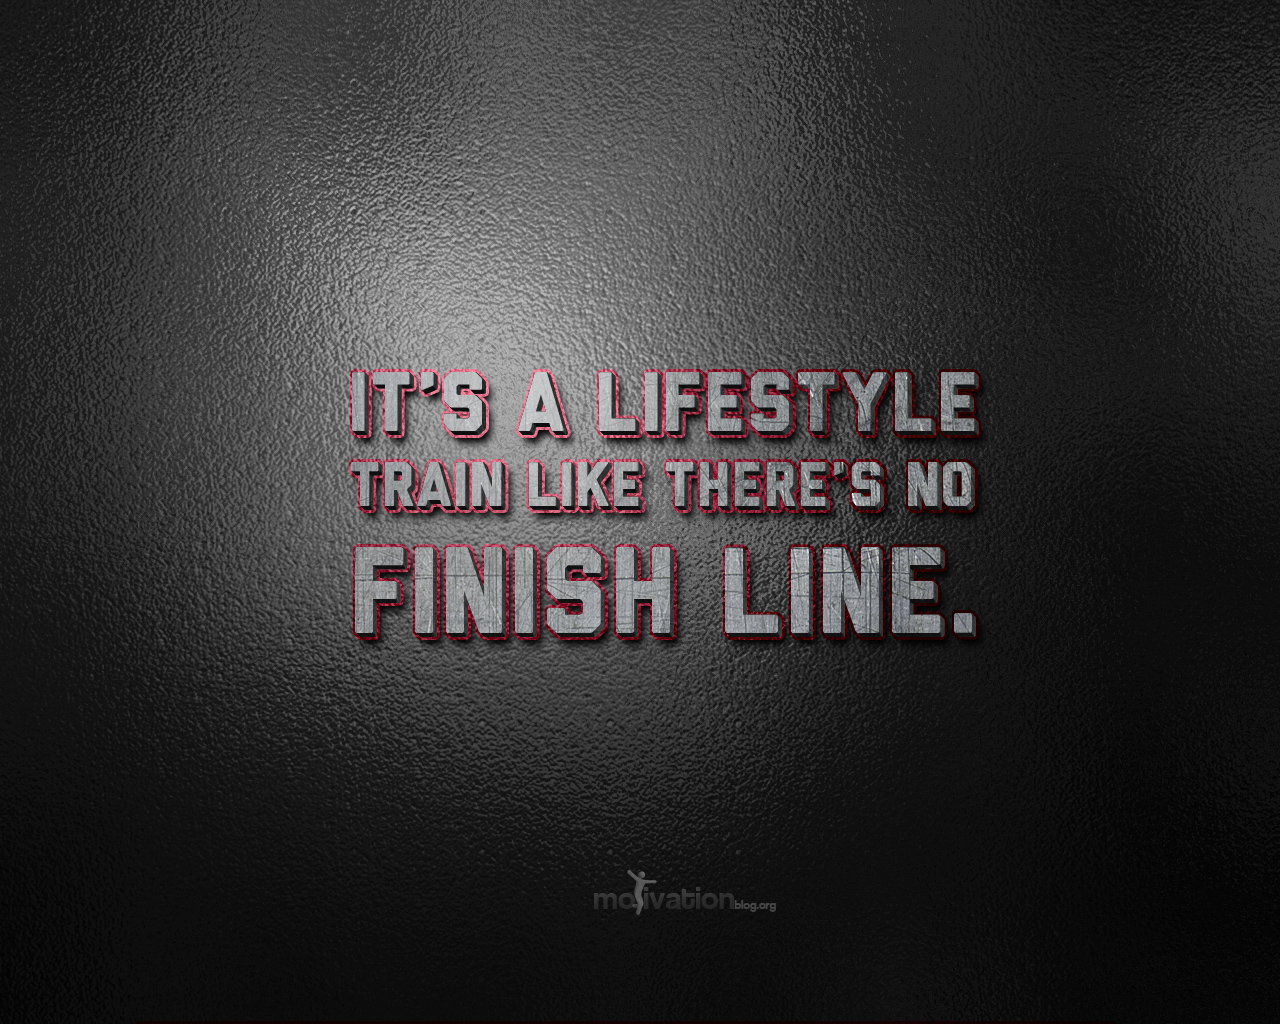 motivation fitness quote wallpapers - photo #17